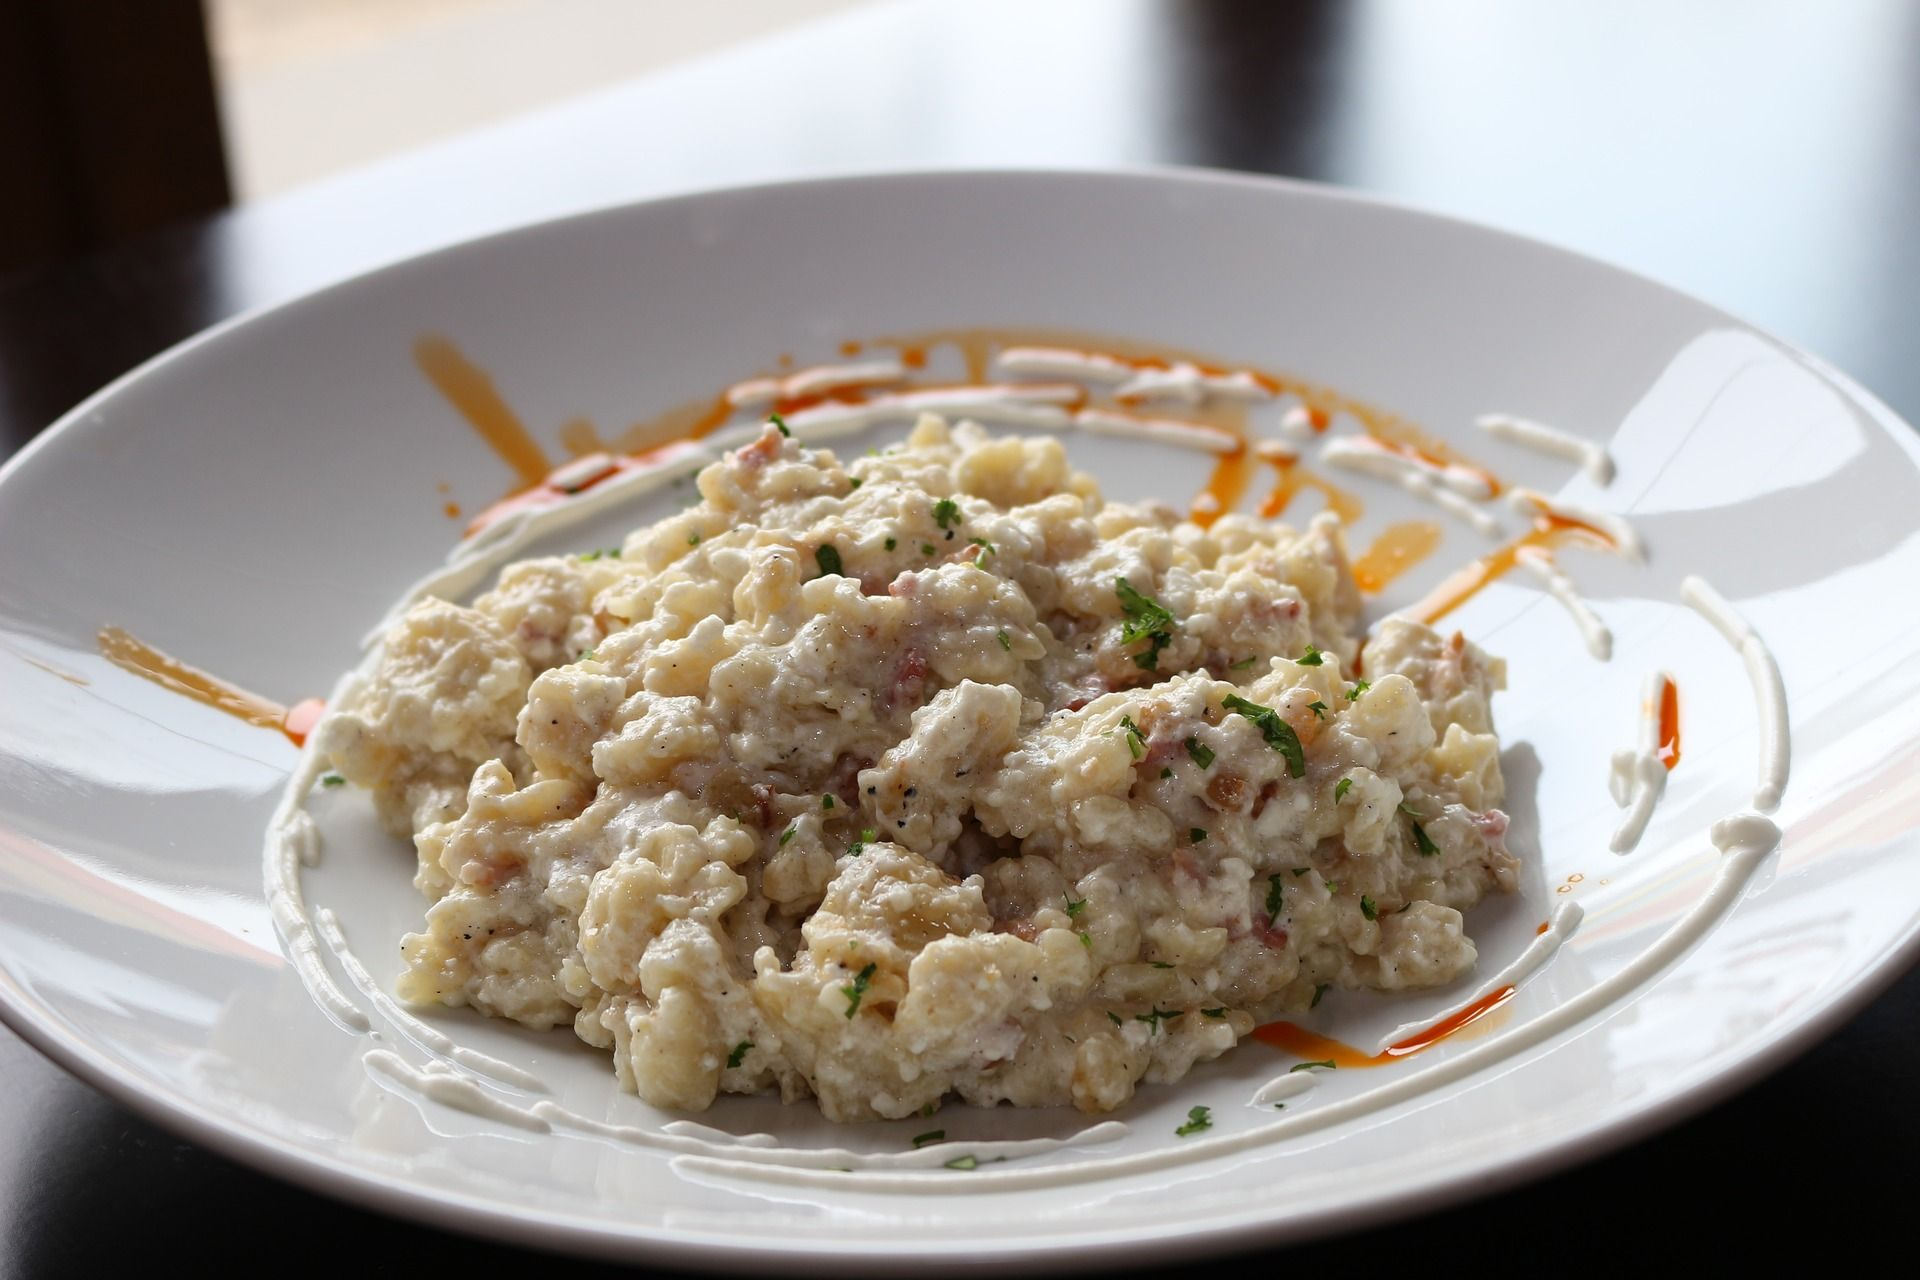 Plate of cottage cheese